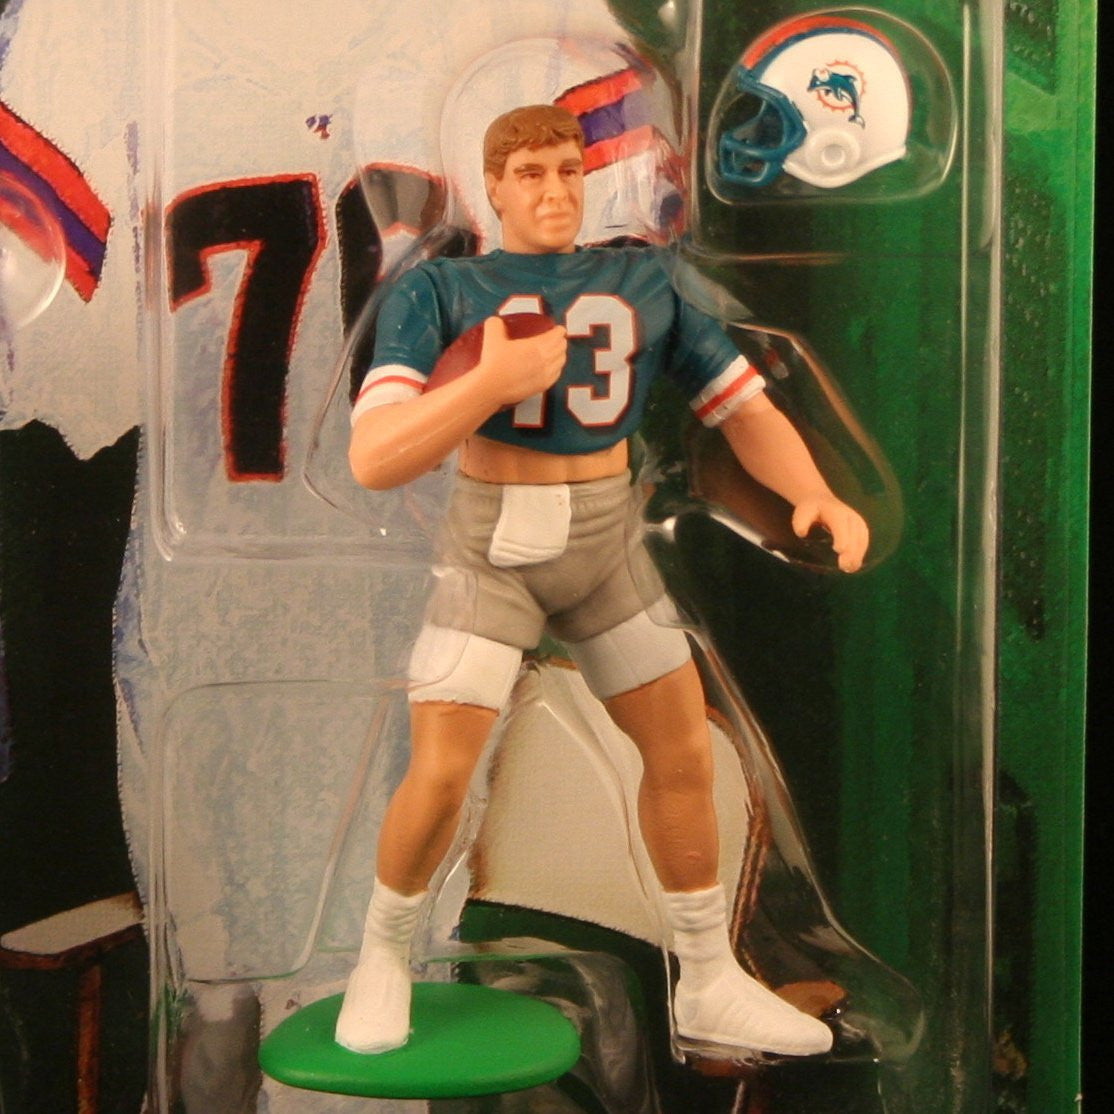 JOHN ELWAY / DENVER BRONCOS & DAN MARINO / MIAMI DOLPHINS 1998 NFL Classic Doubles * Winning Pairs * Starting Lineup Action Figures & Exclusive Collector Trading Cards